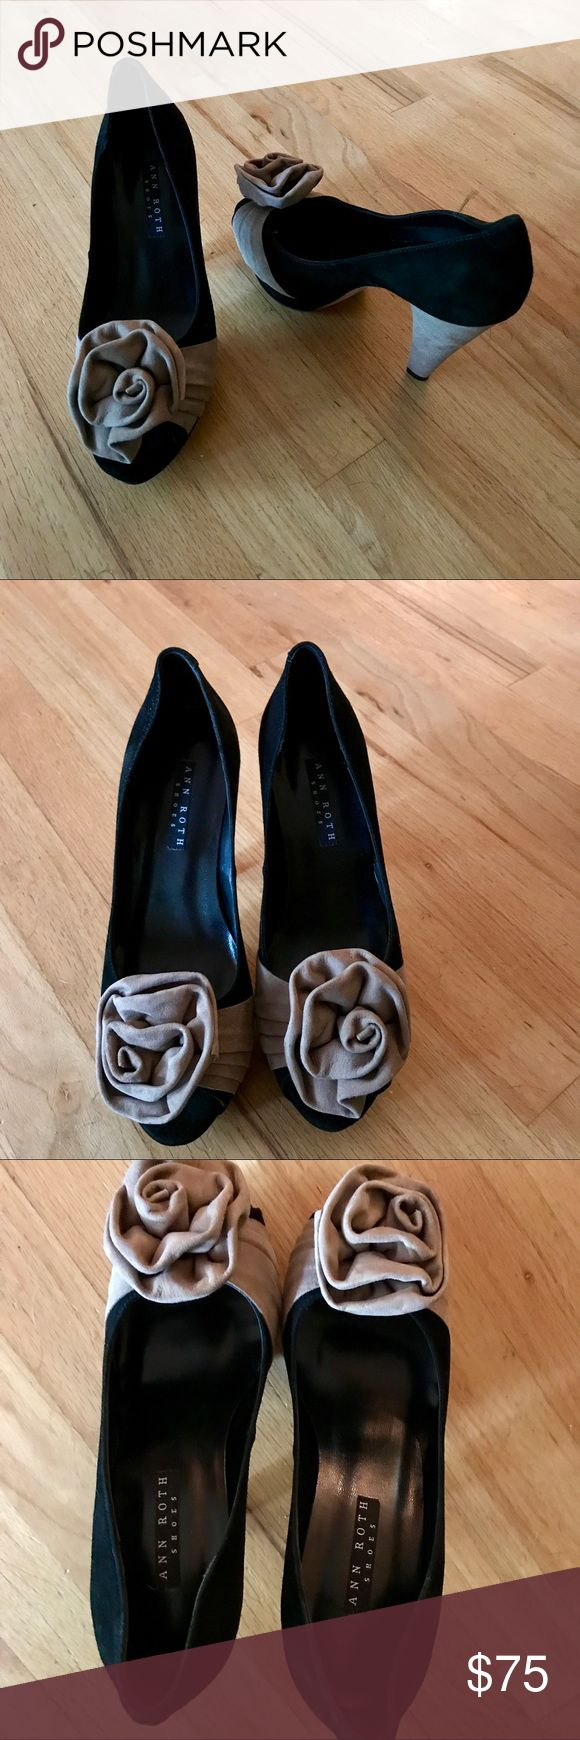 Ann Roth Black and Mushroom Suede Charisma Shoes Ann Roth Black and Mushroom Suede Charisma Shoes.  Beautiful black suede shoes with mushroom color accents and large rosette detail.  Ann designed and sold shoes for several years in boutiques and on line.  Good condition, found a dark mark on the side of on shoe (see pic)  but does not show when wearing.  I have not tried to clean it off.  Made in Spain Ann Roth Shoes Heels